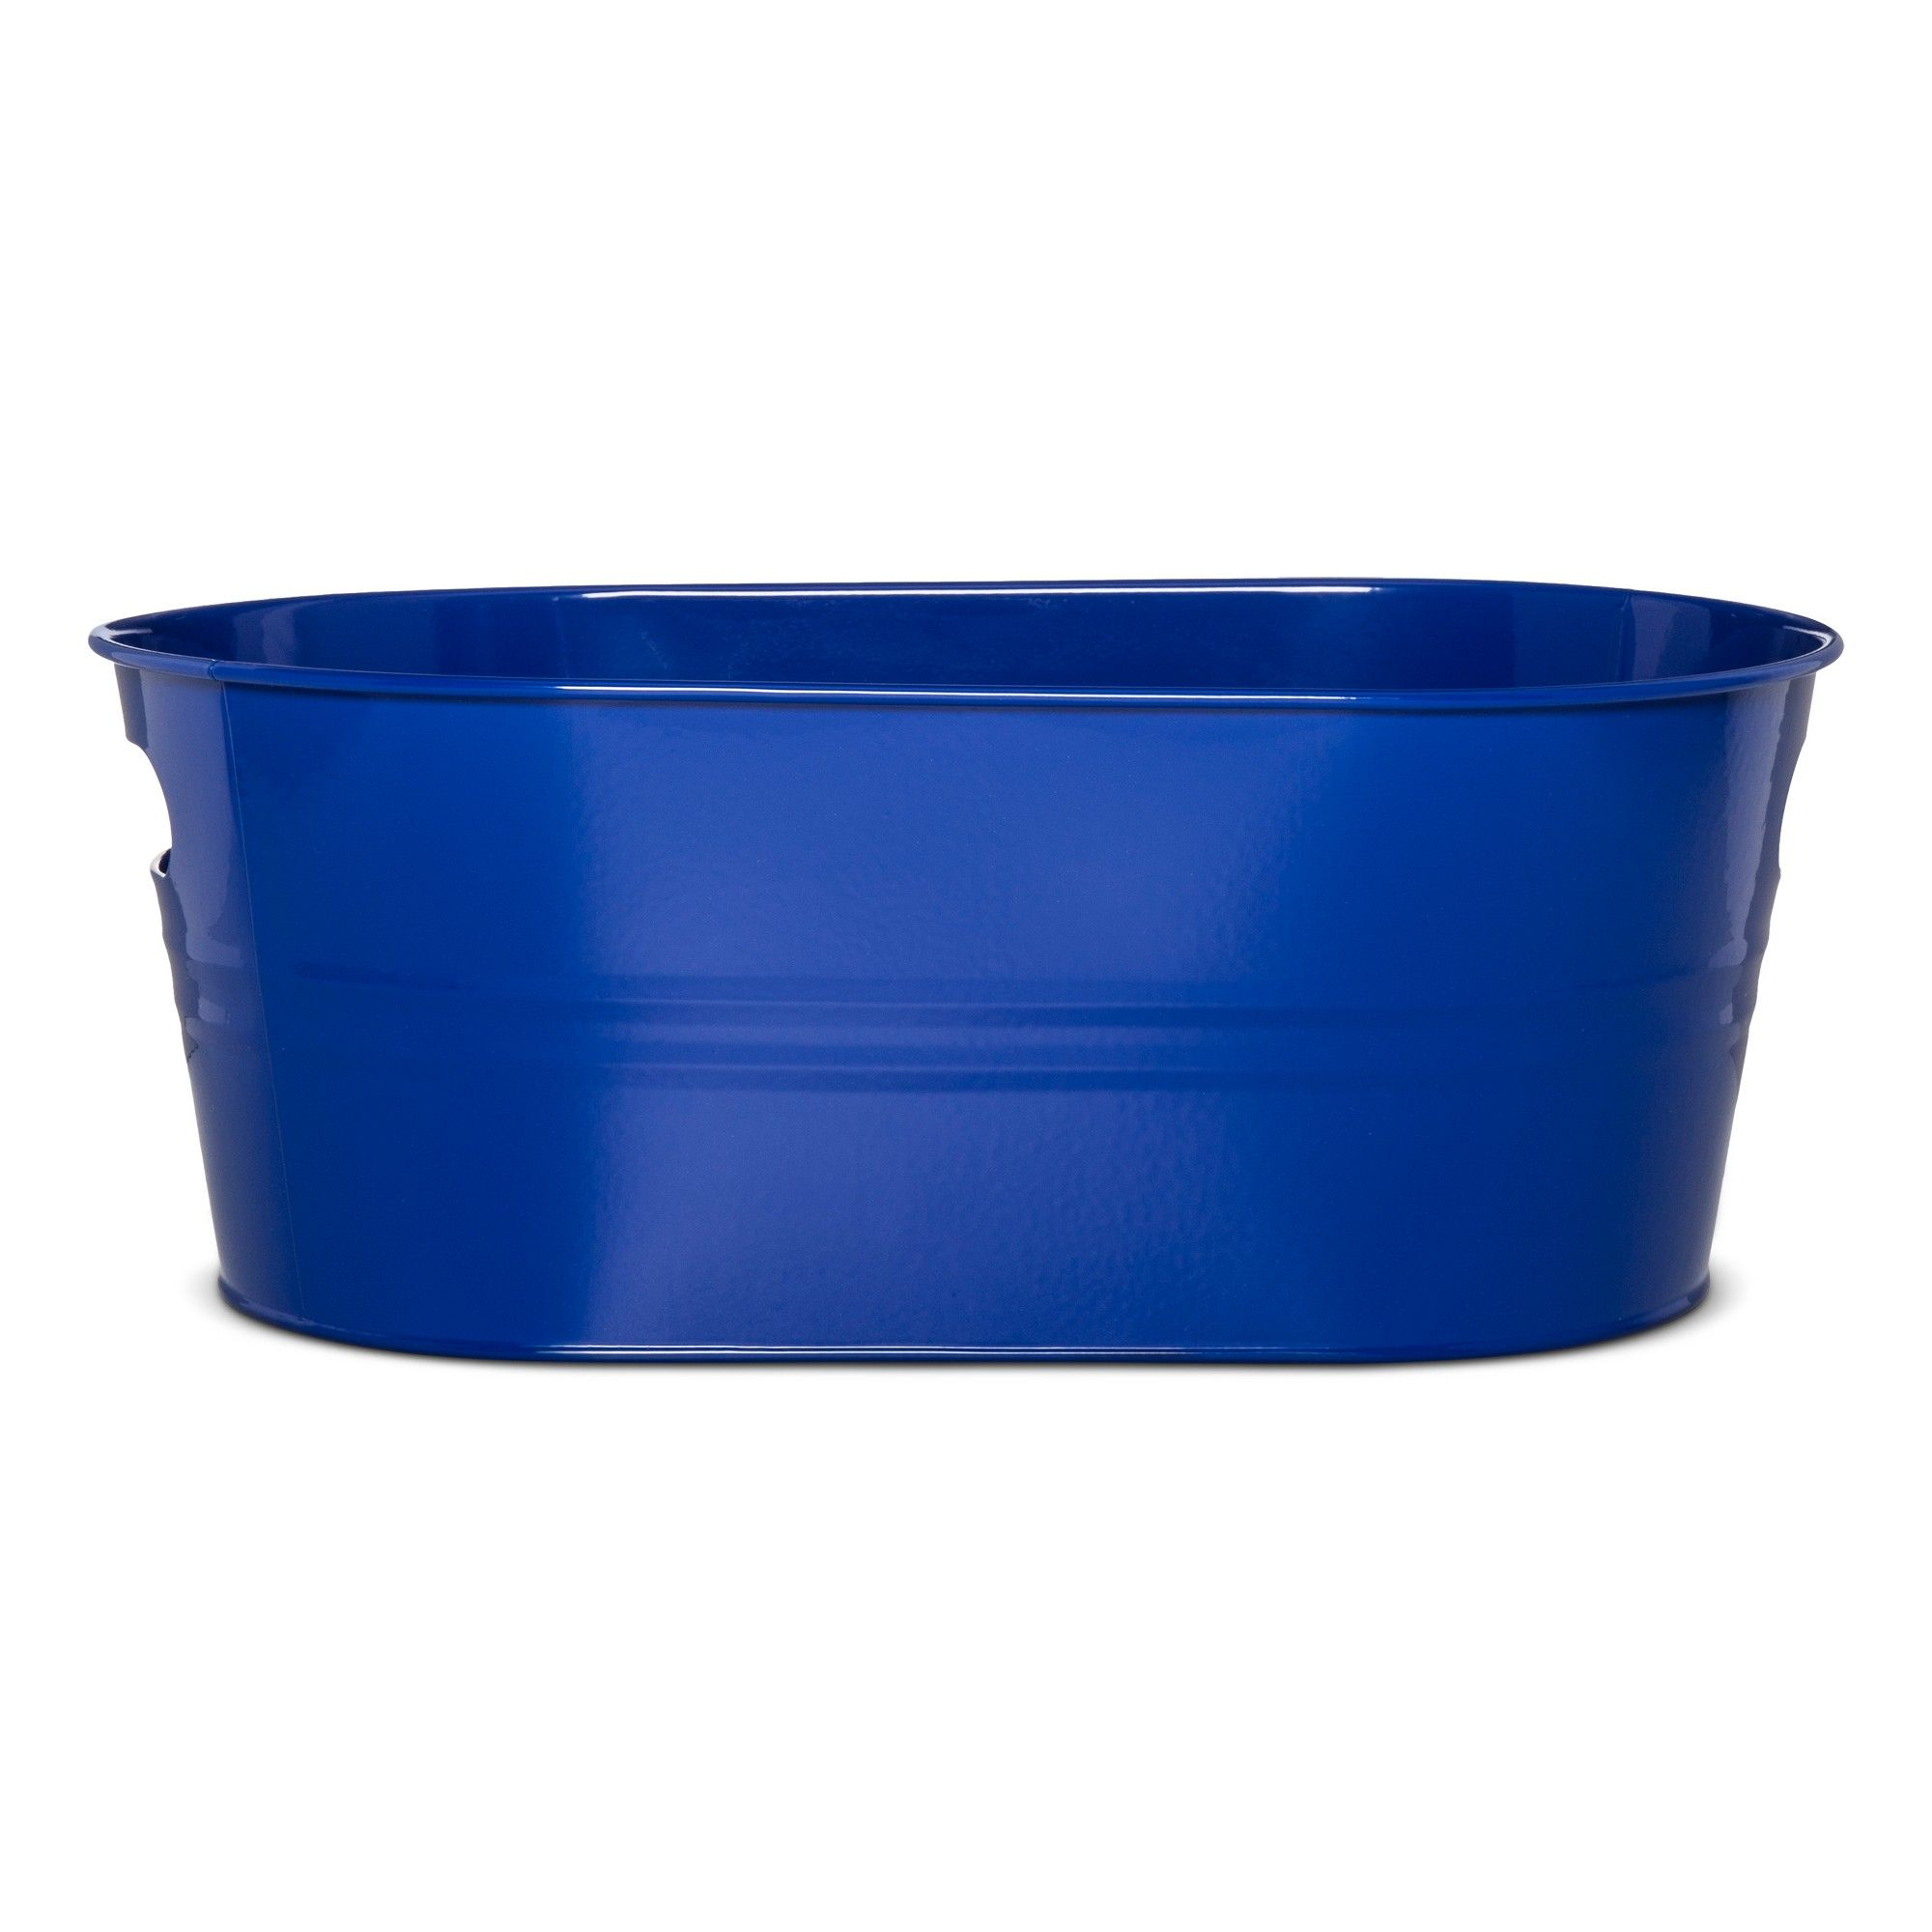 Small 1.5gal Steel Beverage Tub Blue | Pinterest | Tubs, Steel and ...